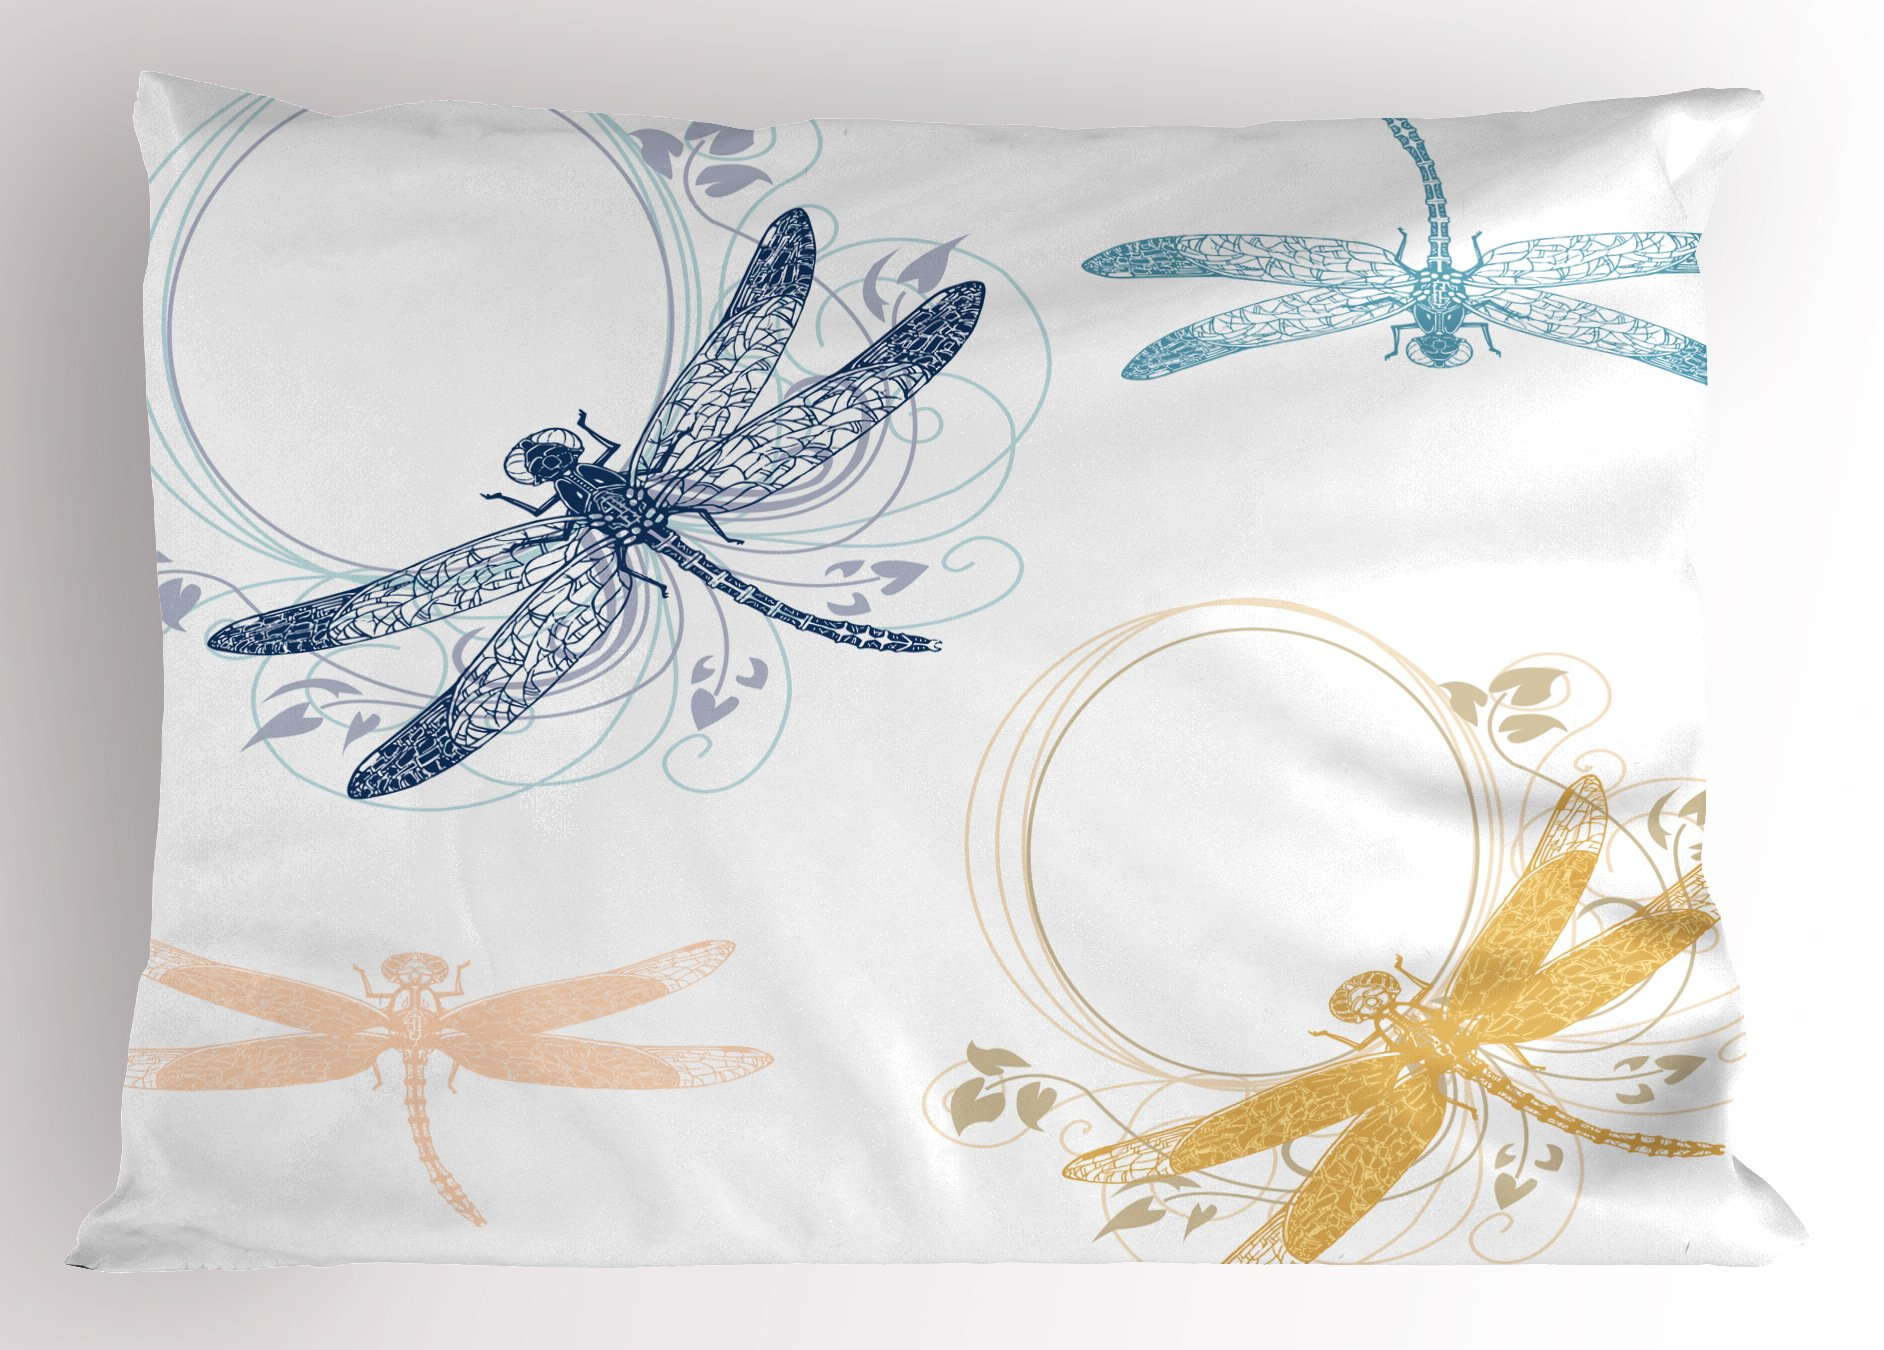 Ambesonne Dragonfly Pillow Sham, Floral Spring Bugs Wings with Flower Petals Animal Nature Elegance Artful Motif, Decorative Standard Queen Size Printed Pillowcase, 30 X 20 inches, Multicolor